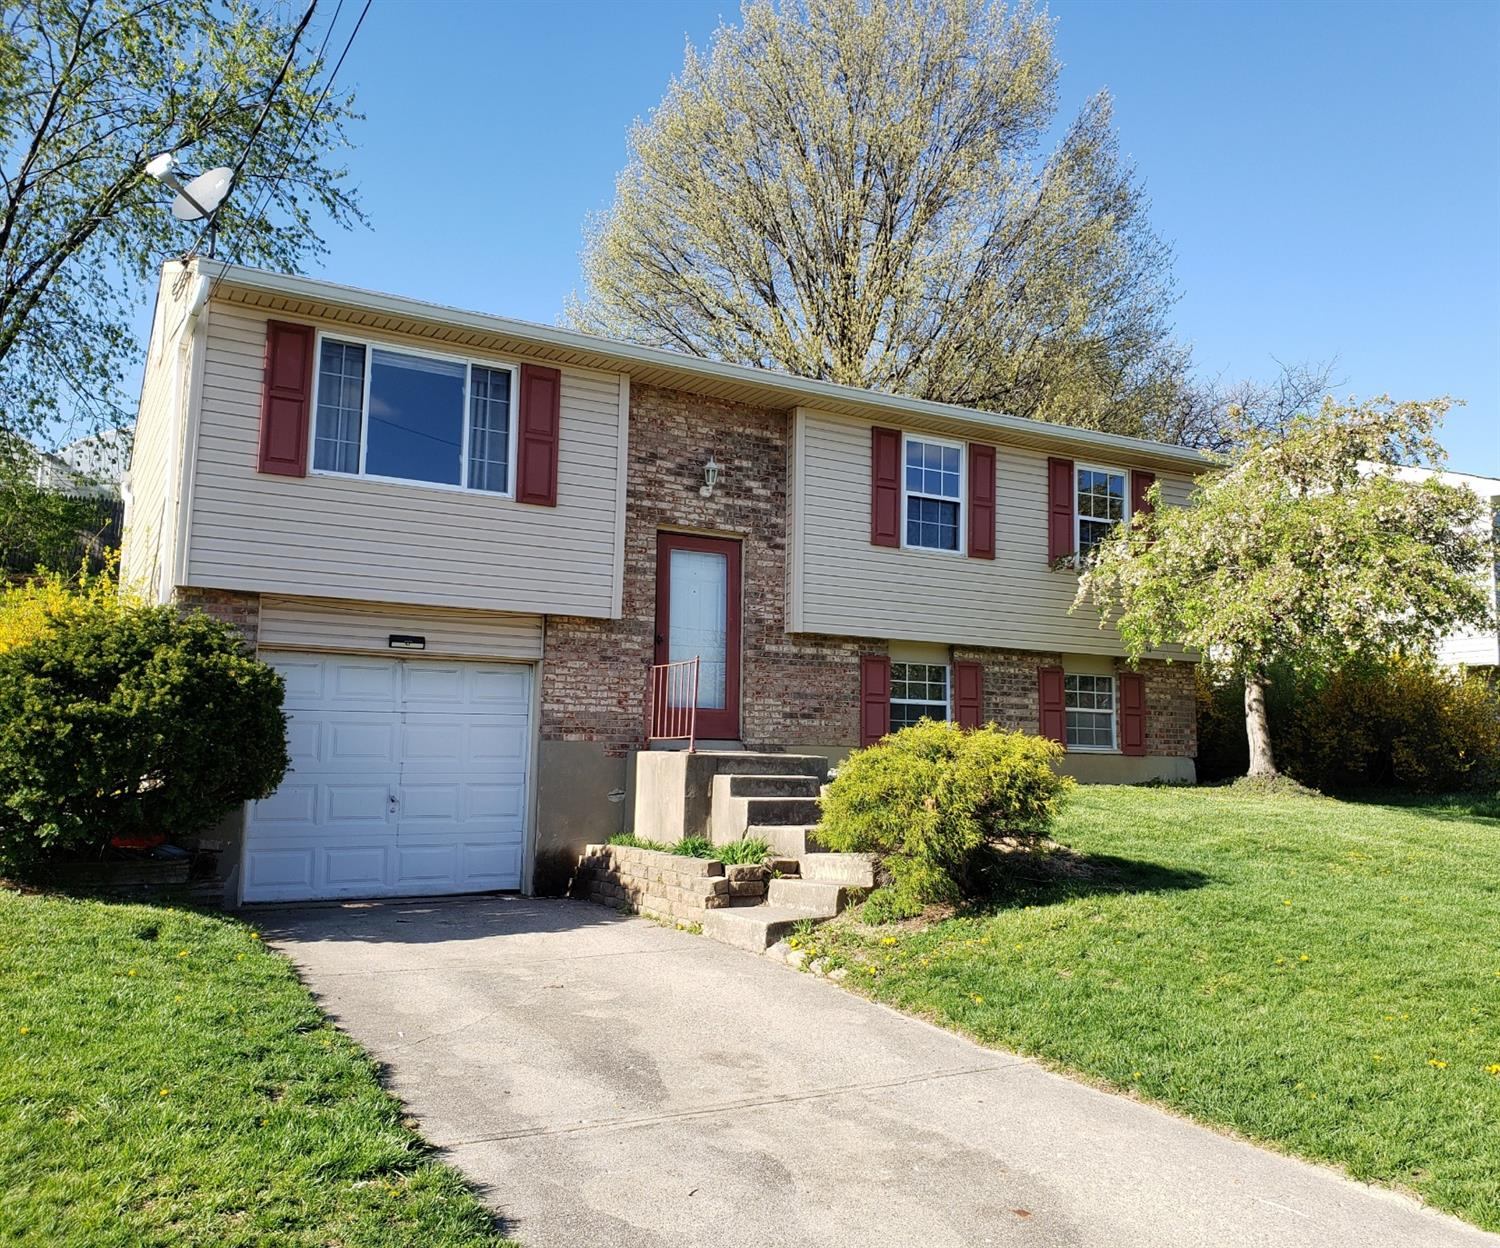 Photo 2 for 4466 Valence Dr Delhi Twp., OH 45238